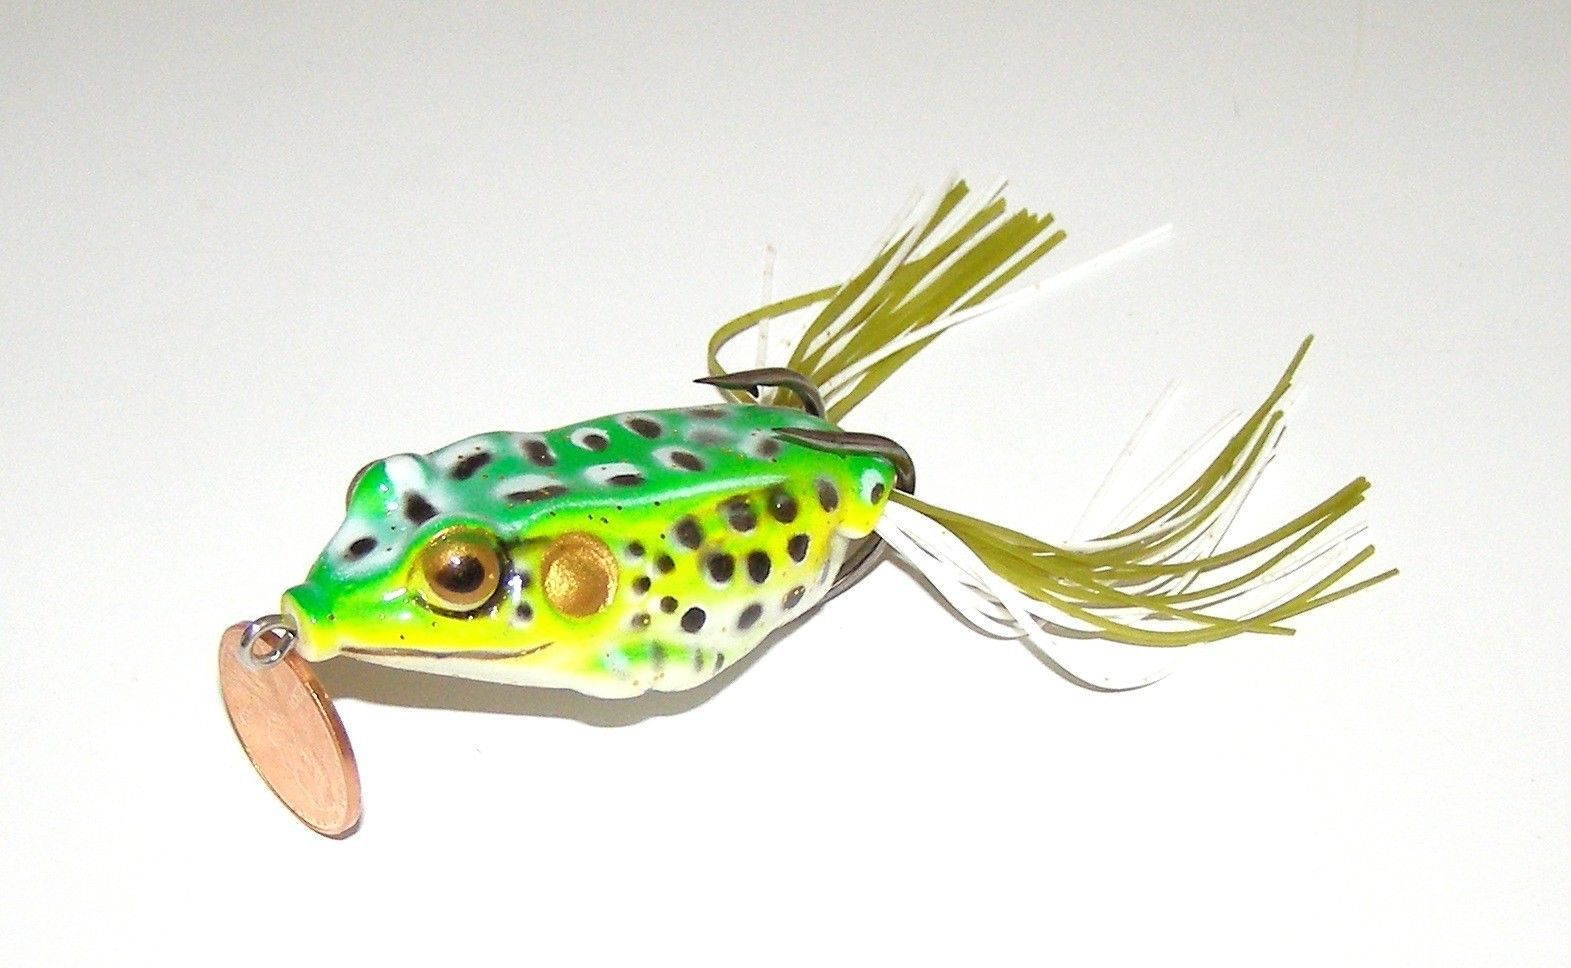 Soft topwater light green life like frog fishing lure bait for Frog fishing lures